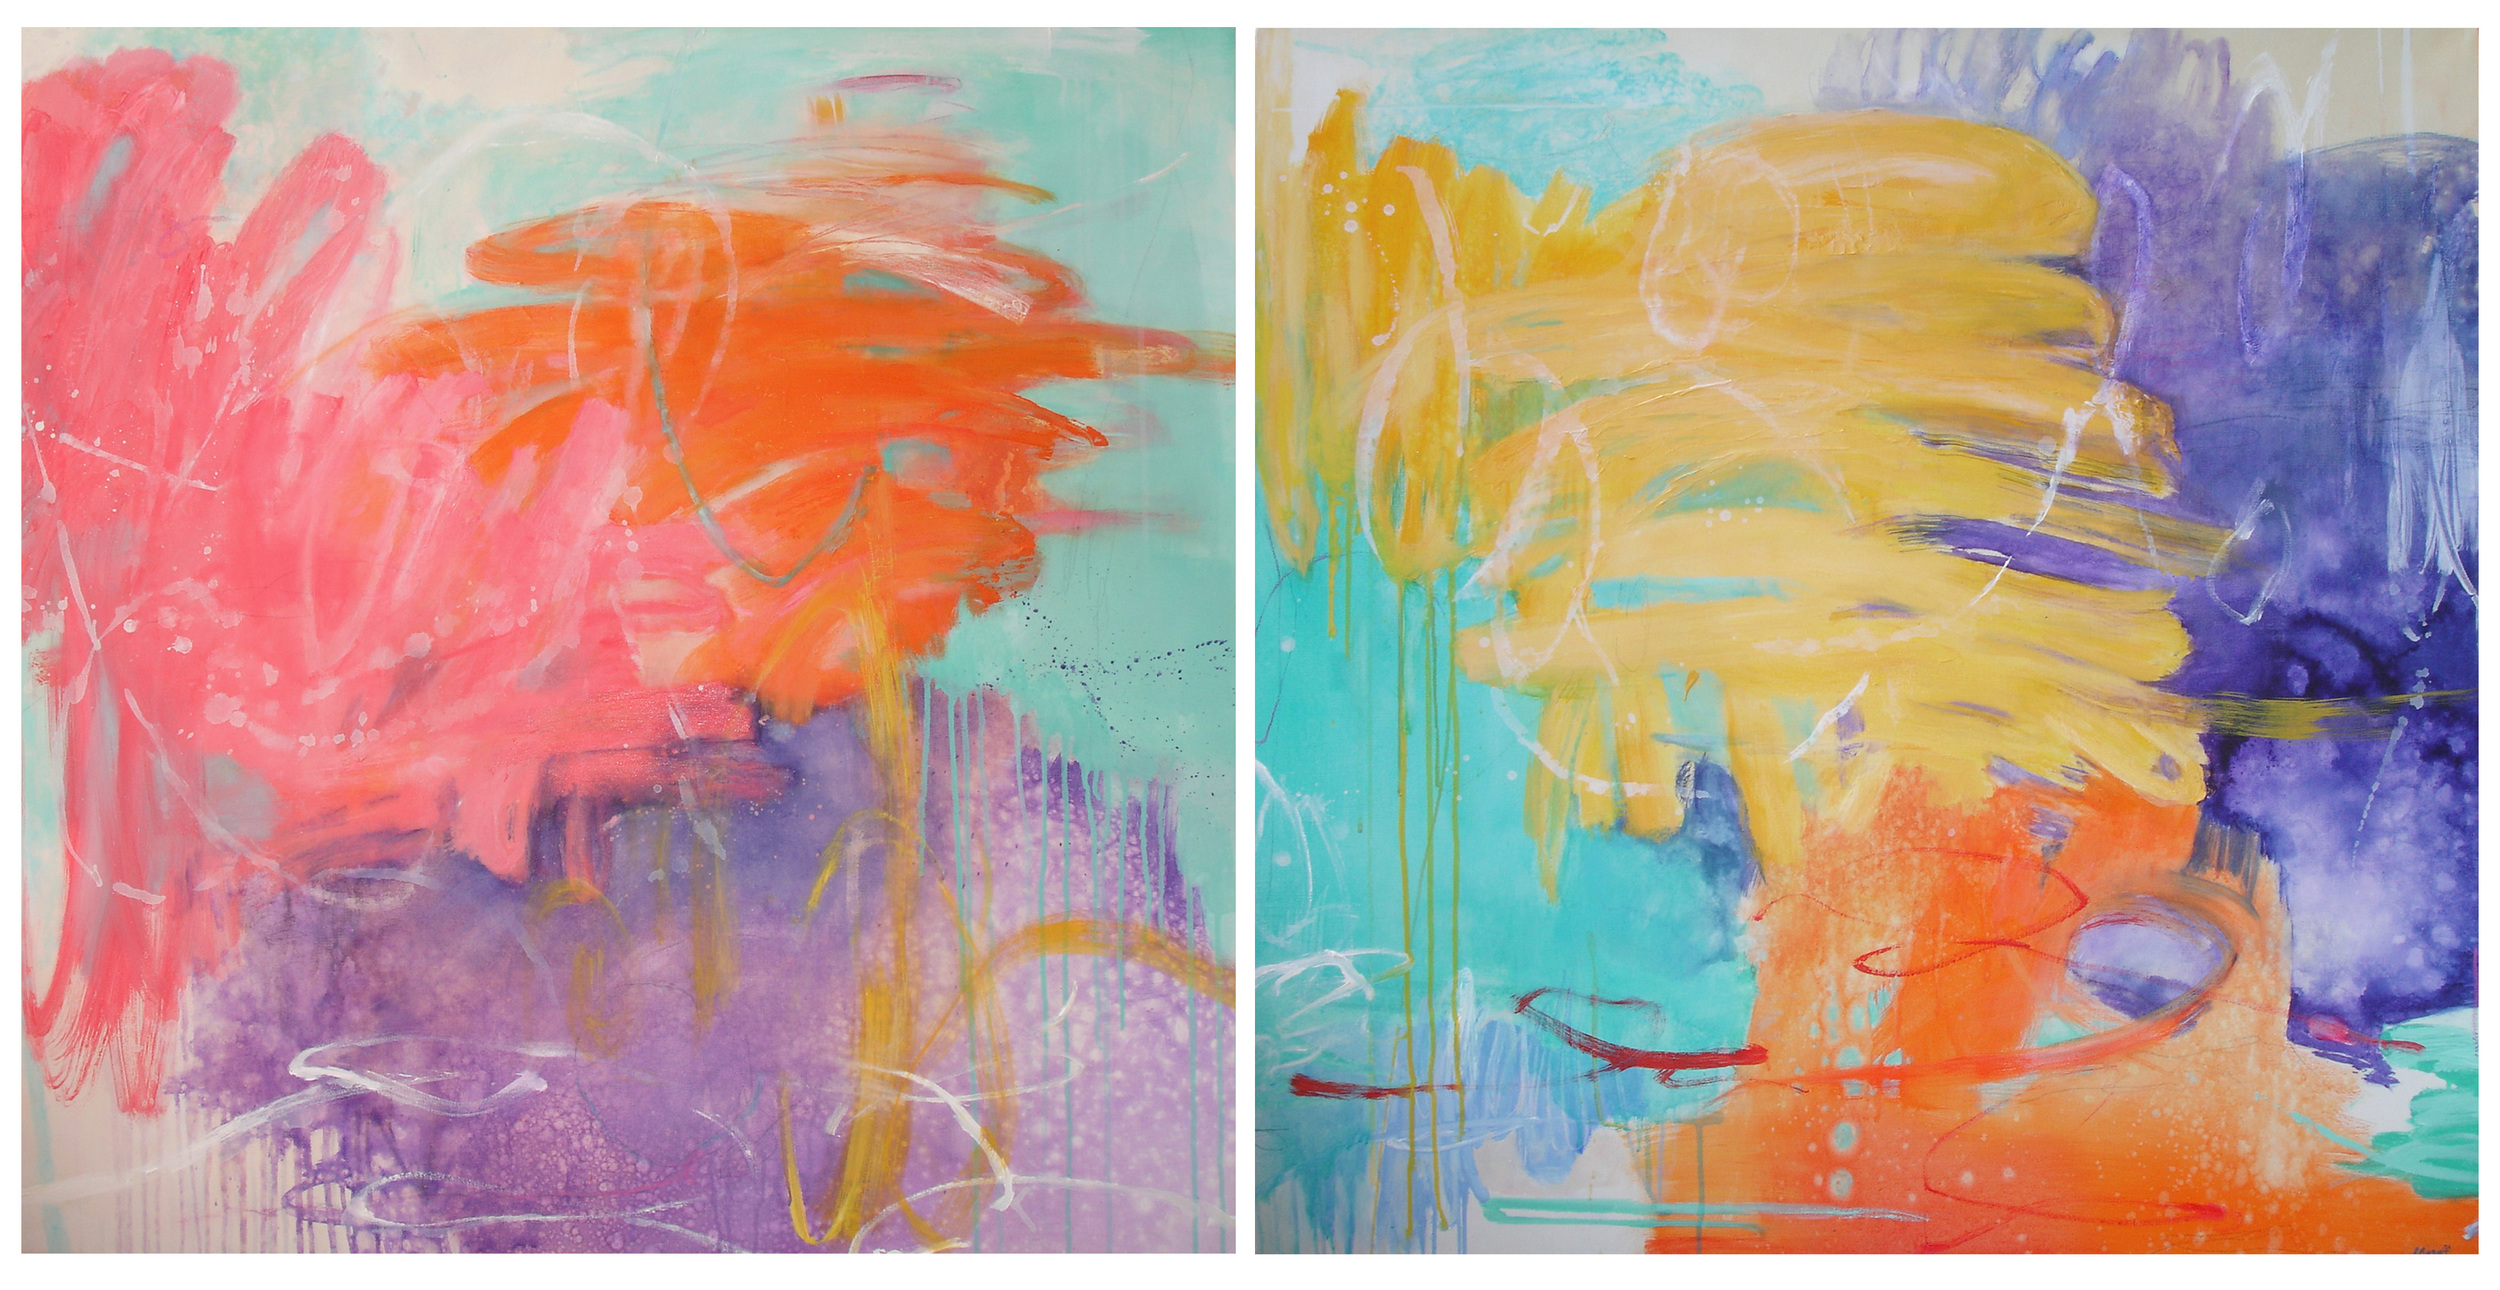 True Colours 1 & 2, 92 x 92cm